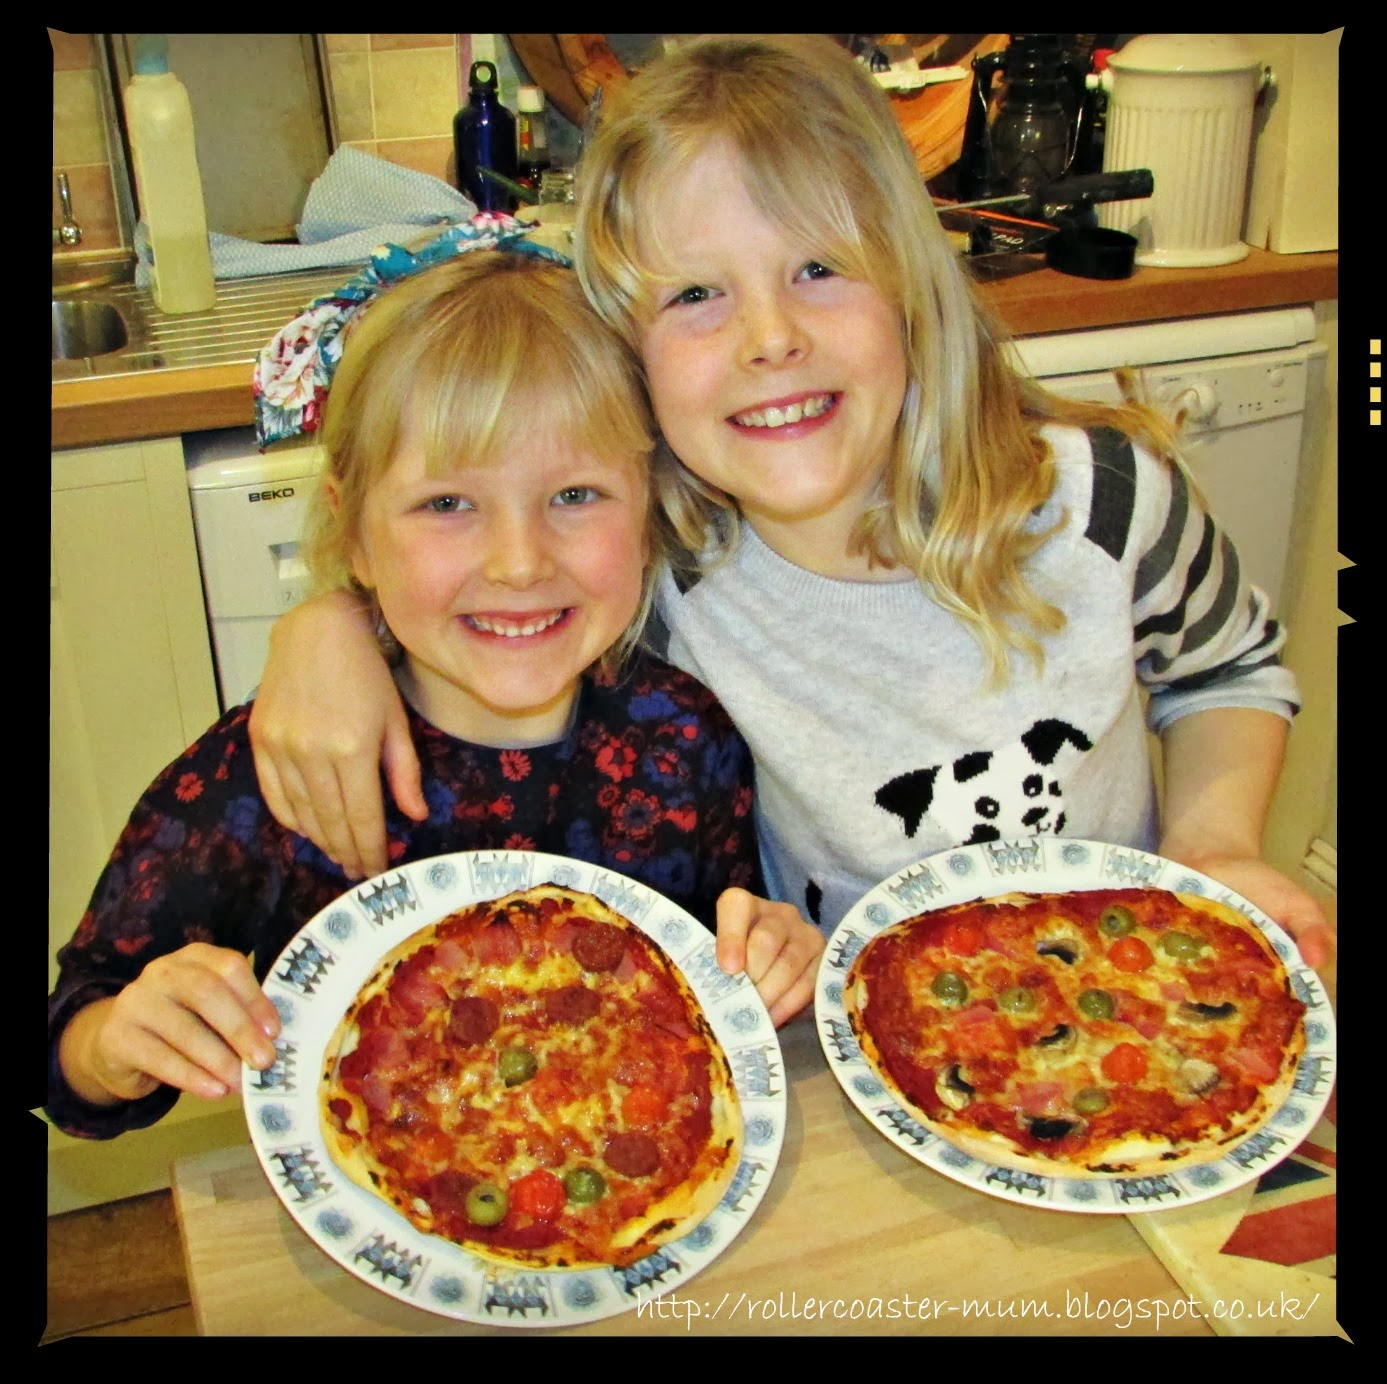 home-made pizza - much better than from the shops!